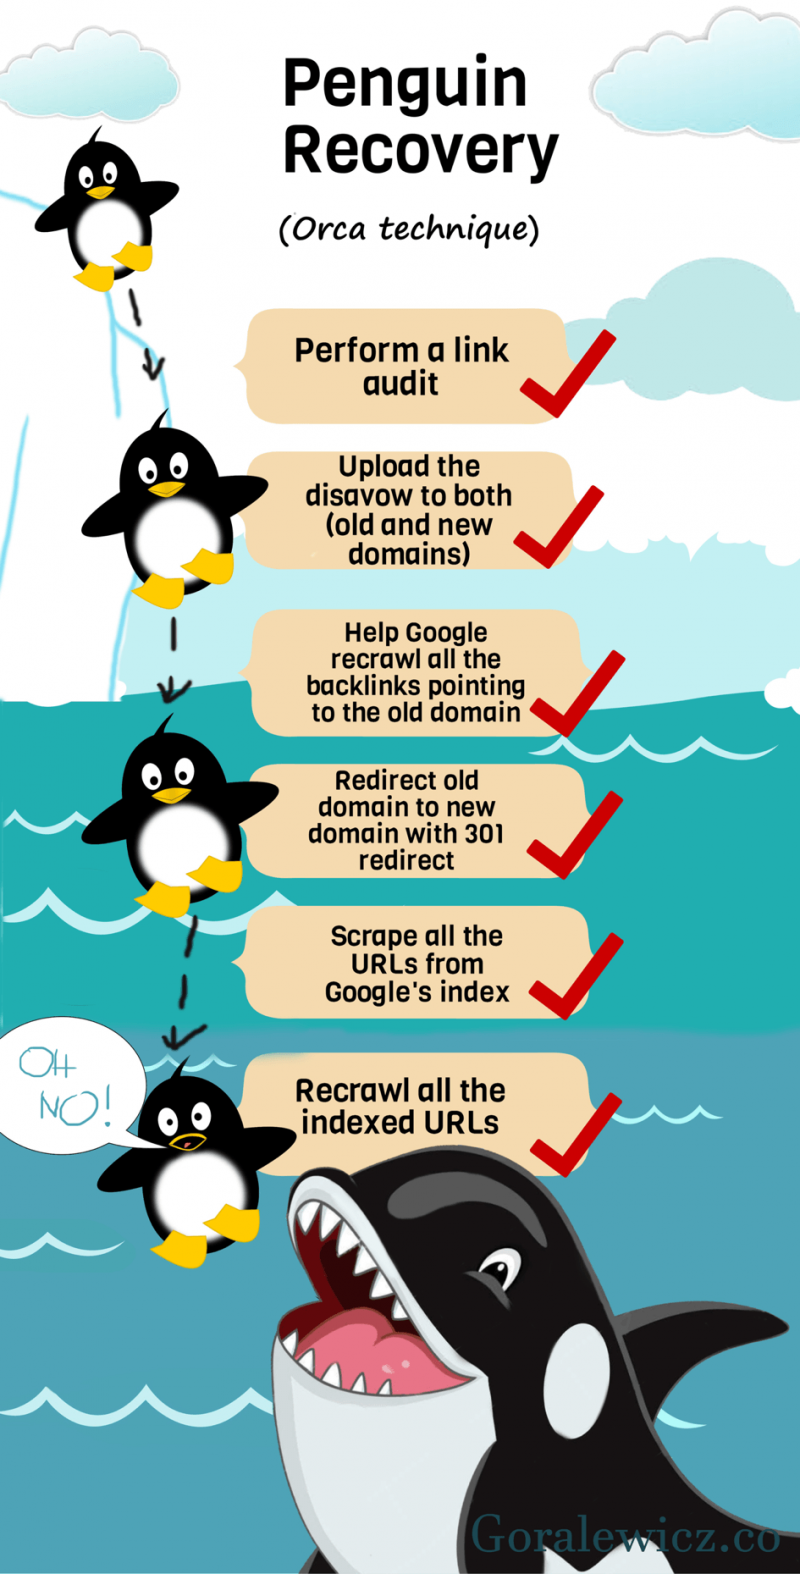 Penguin Recovery Infographic